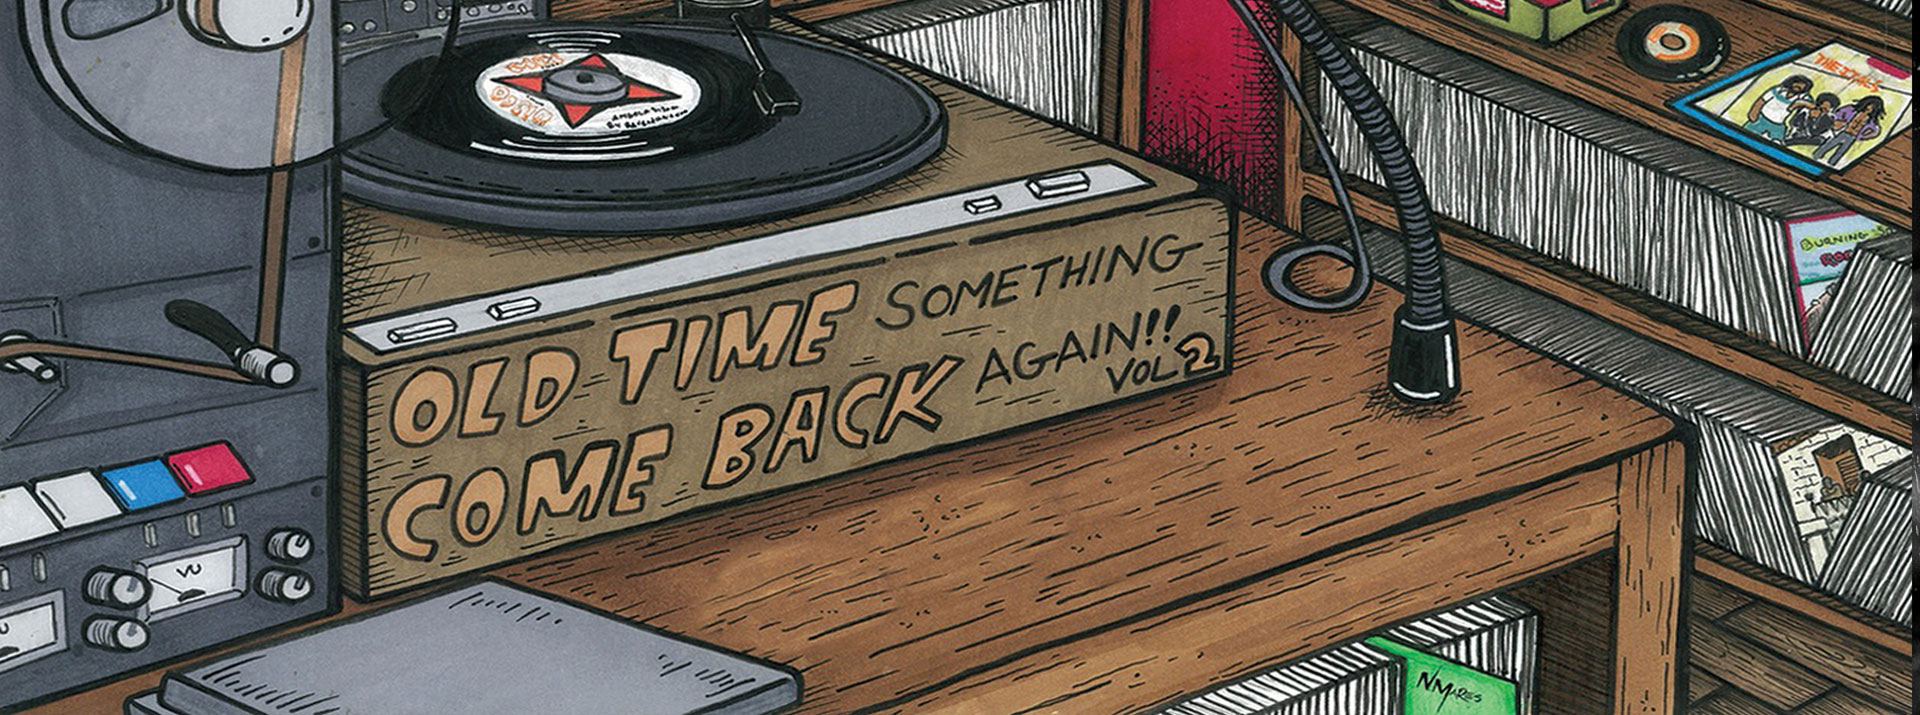 The Expanders - Old Time Something Come Back Again, Vol. 2